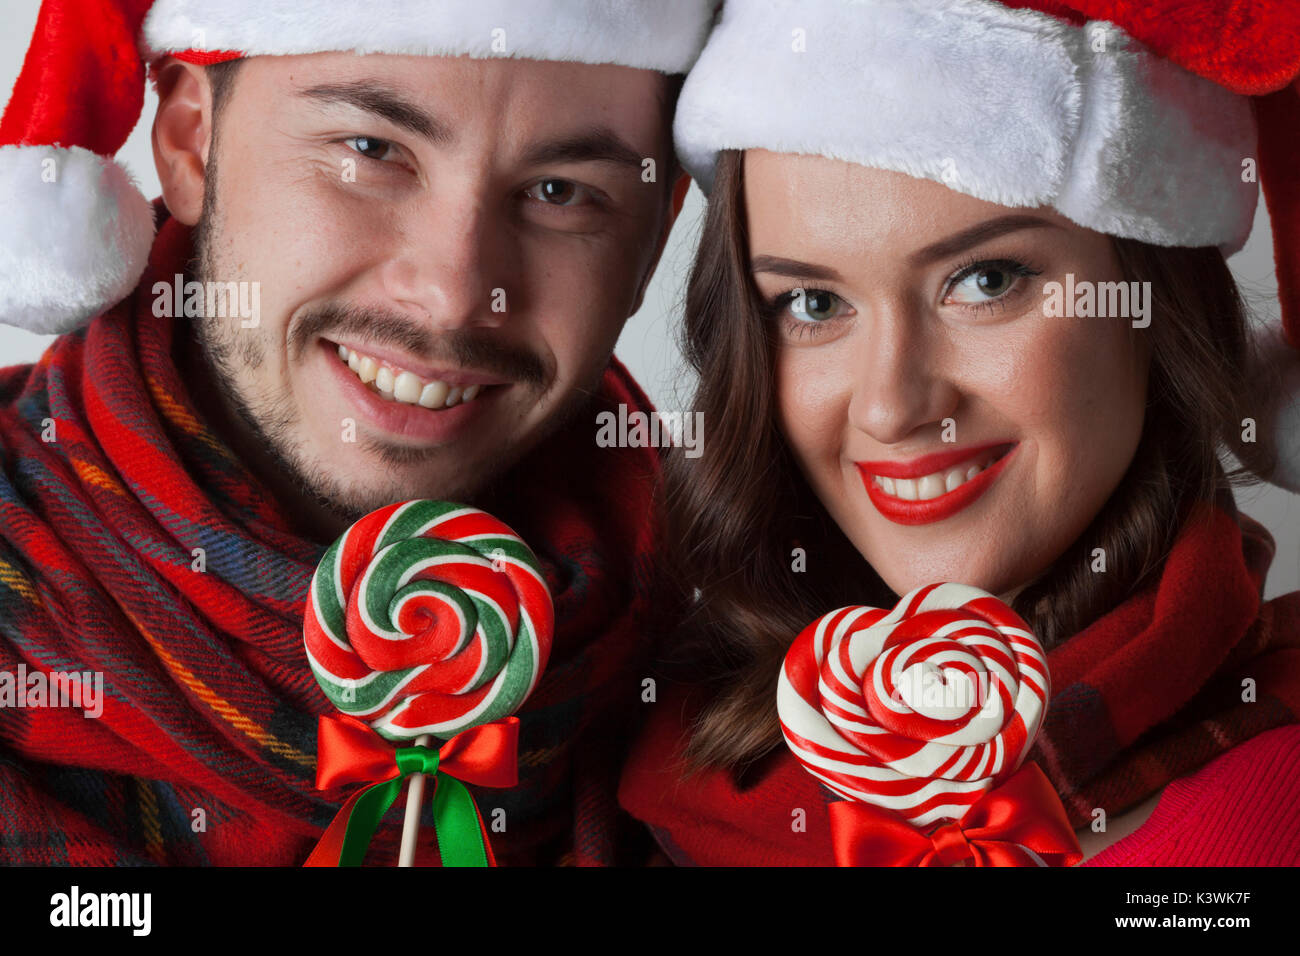 Young Happy Funny Couple In Christmas Santa Hats With Lollipops